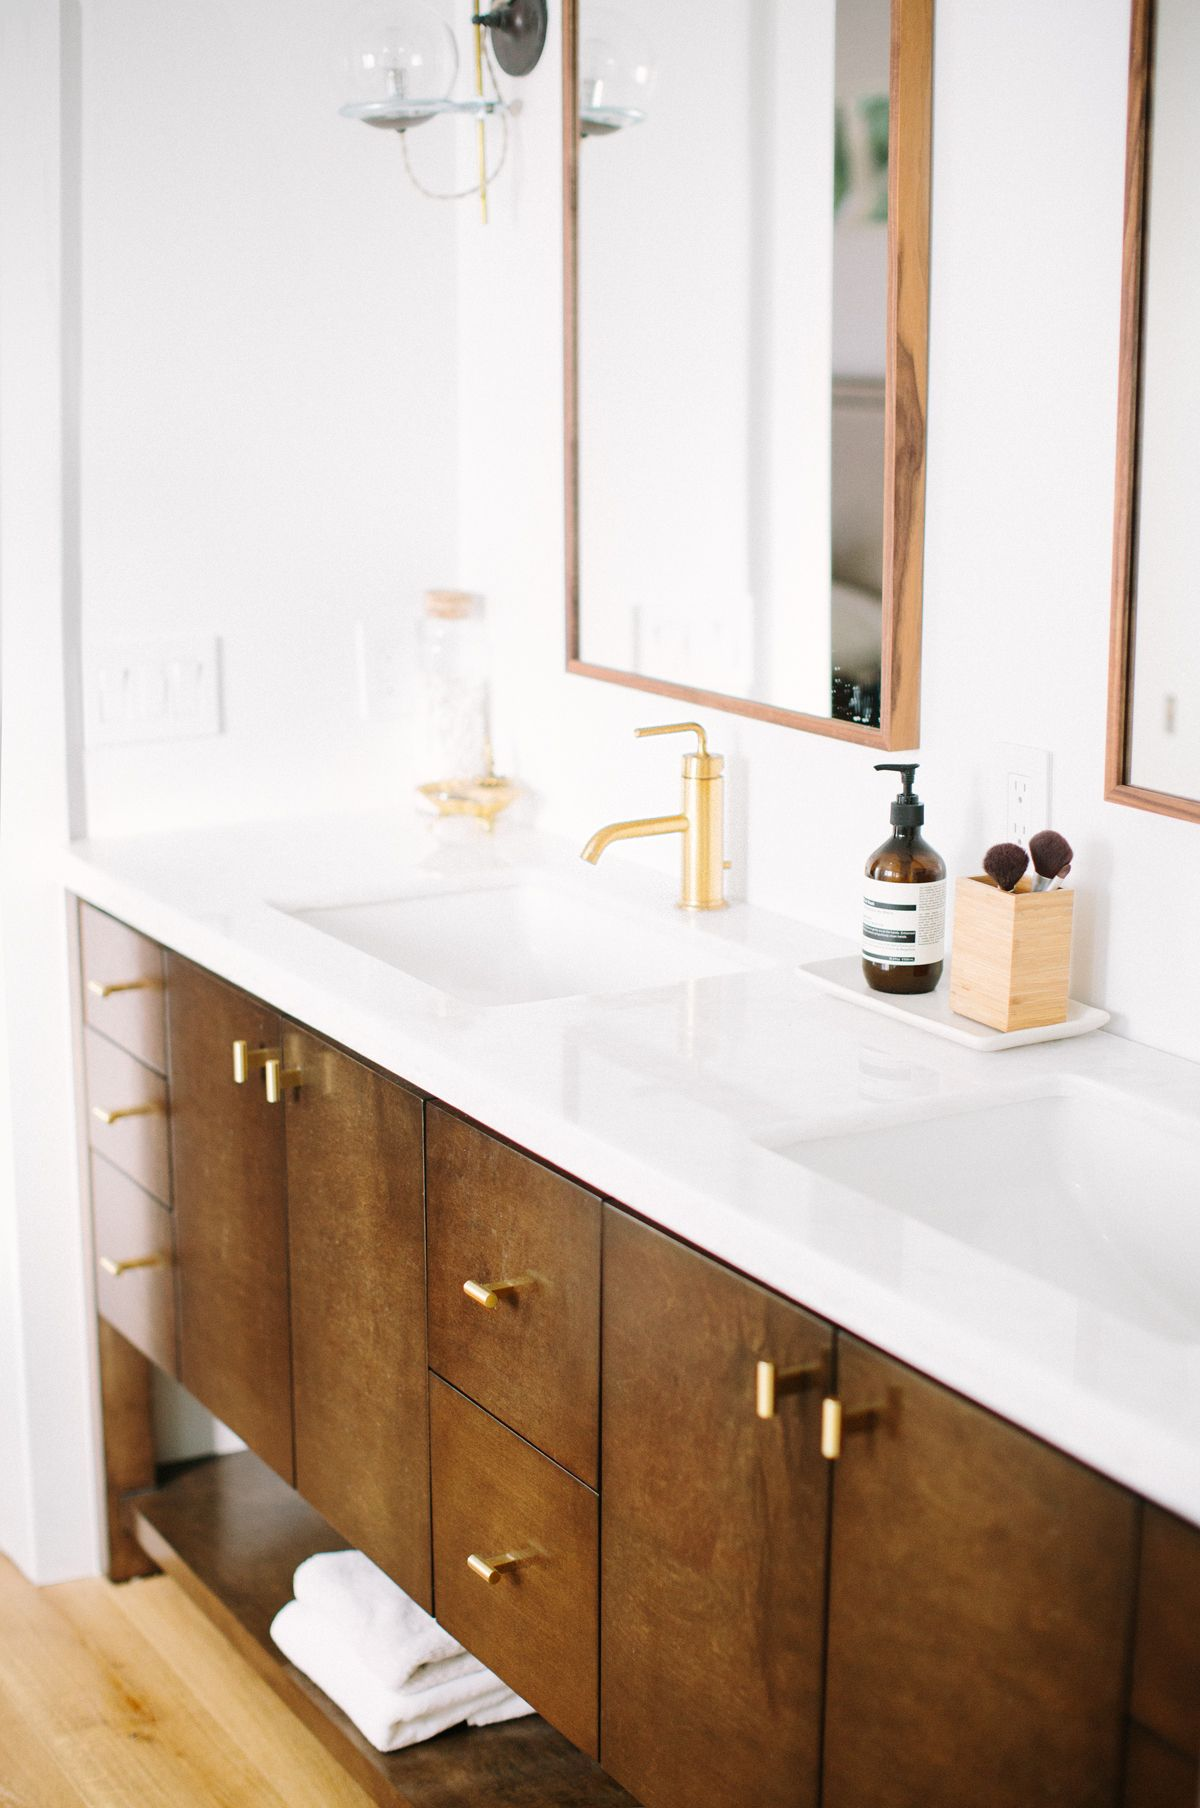 Custom mid-century modern wood bathroom vanity designed by Carly ...